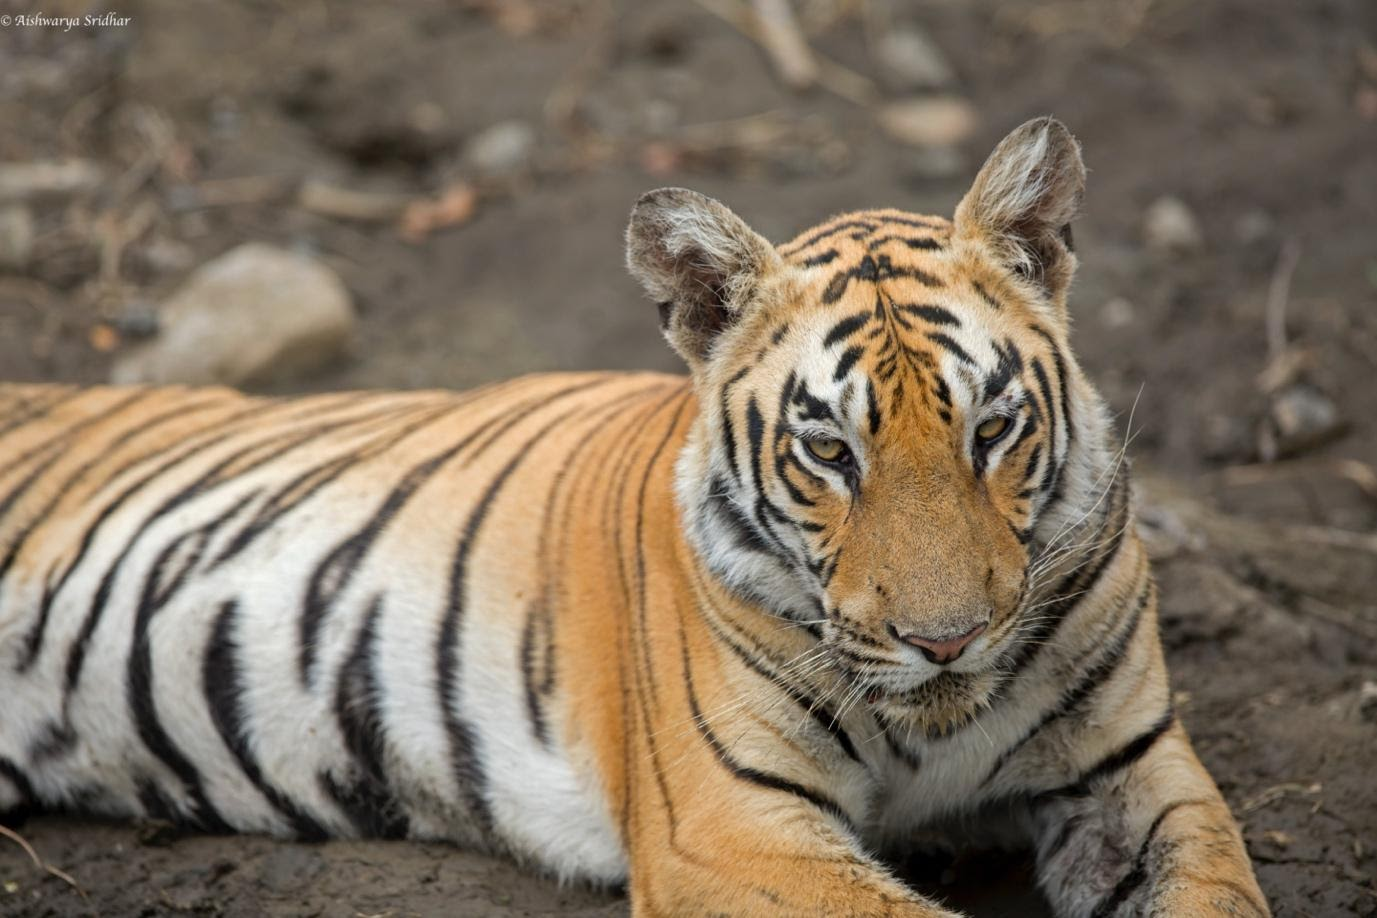 A tiger lying on the groundDescription automatically generated